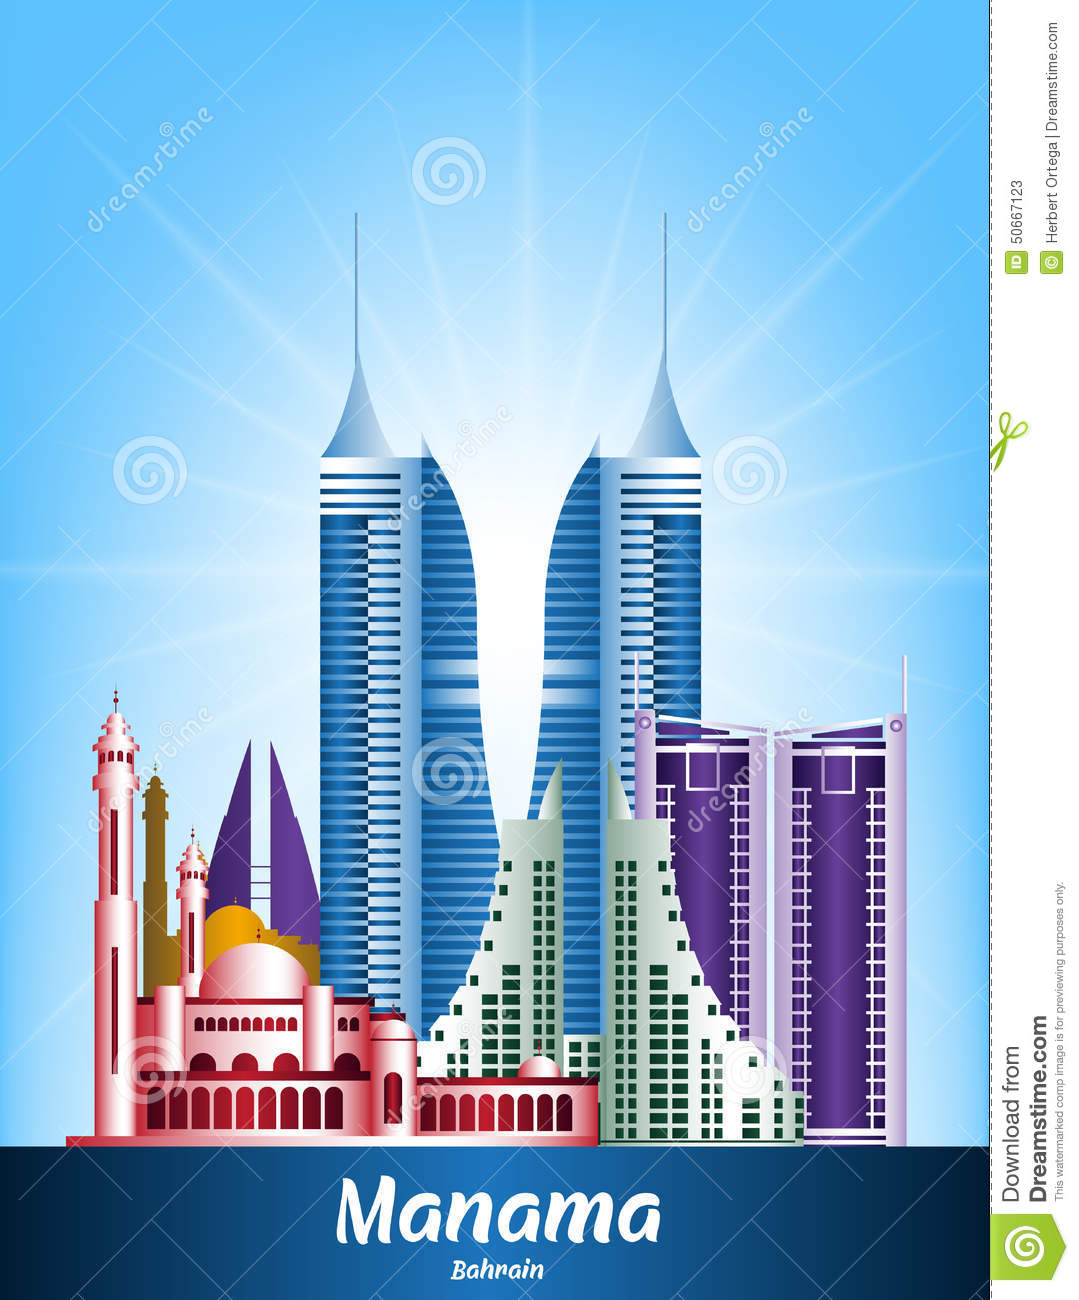 City of manama bahrain famous buildings stock vector for United international decor bahrain